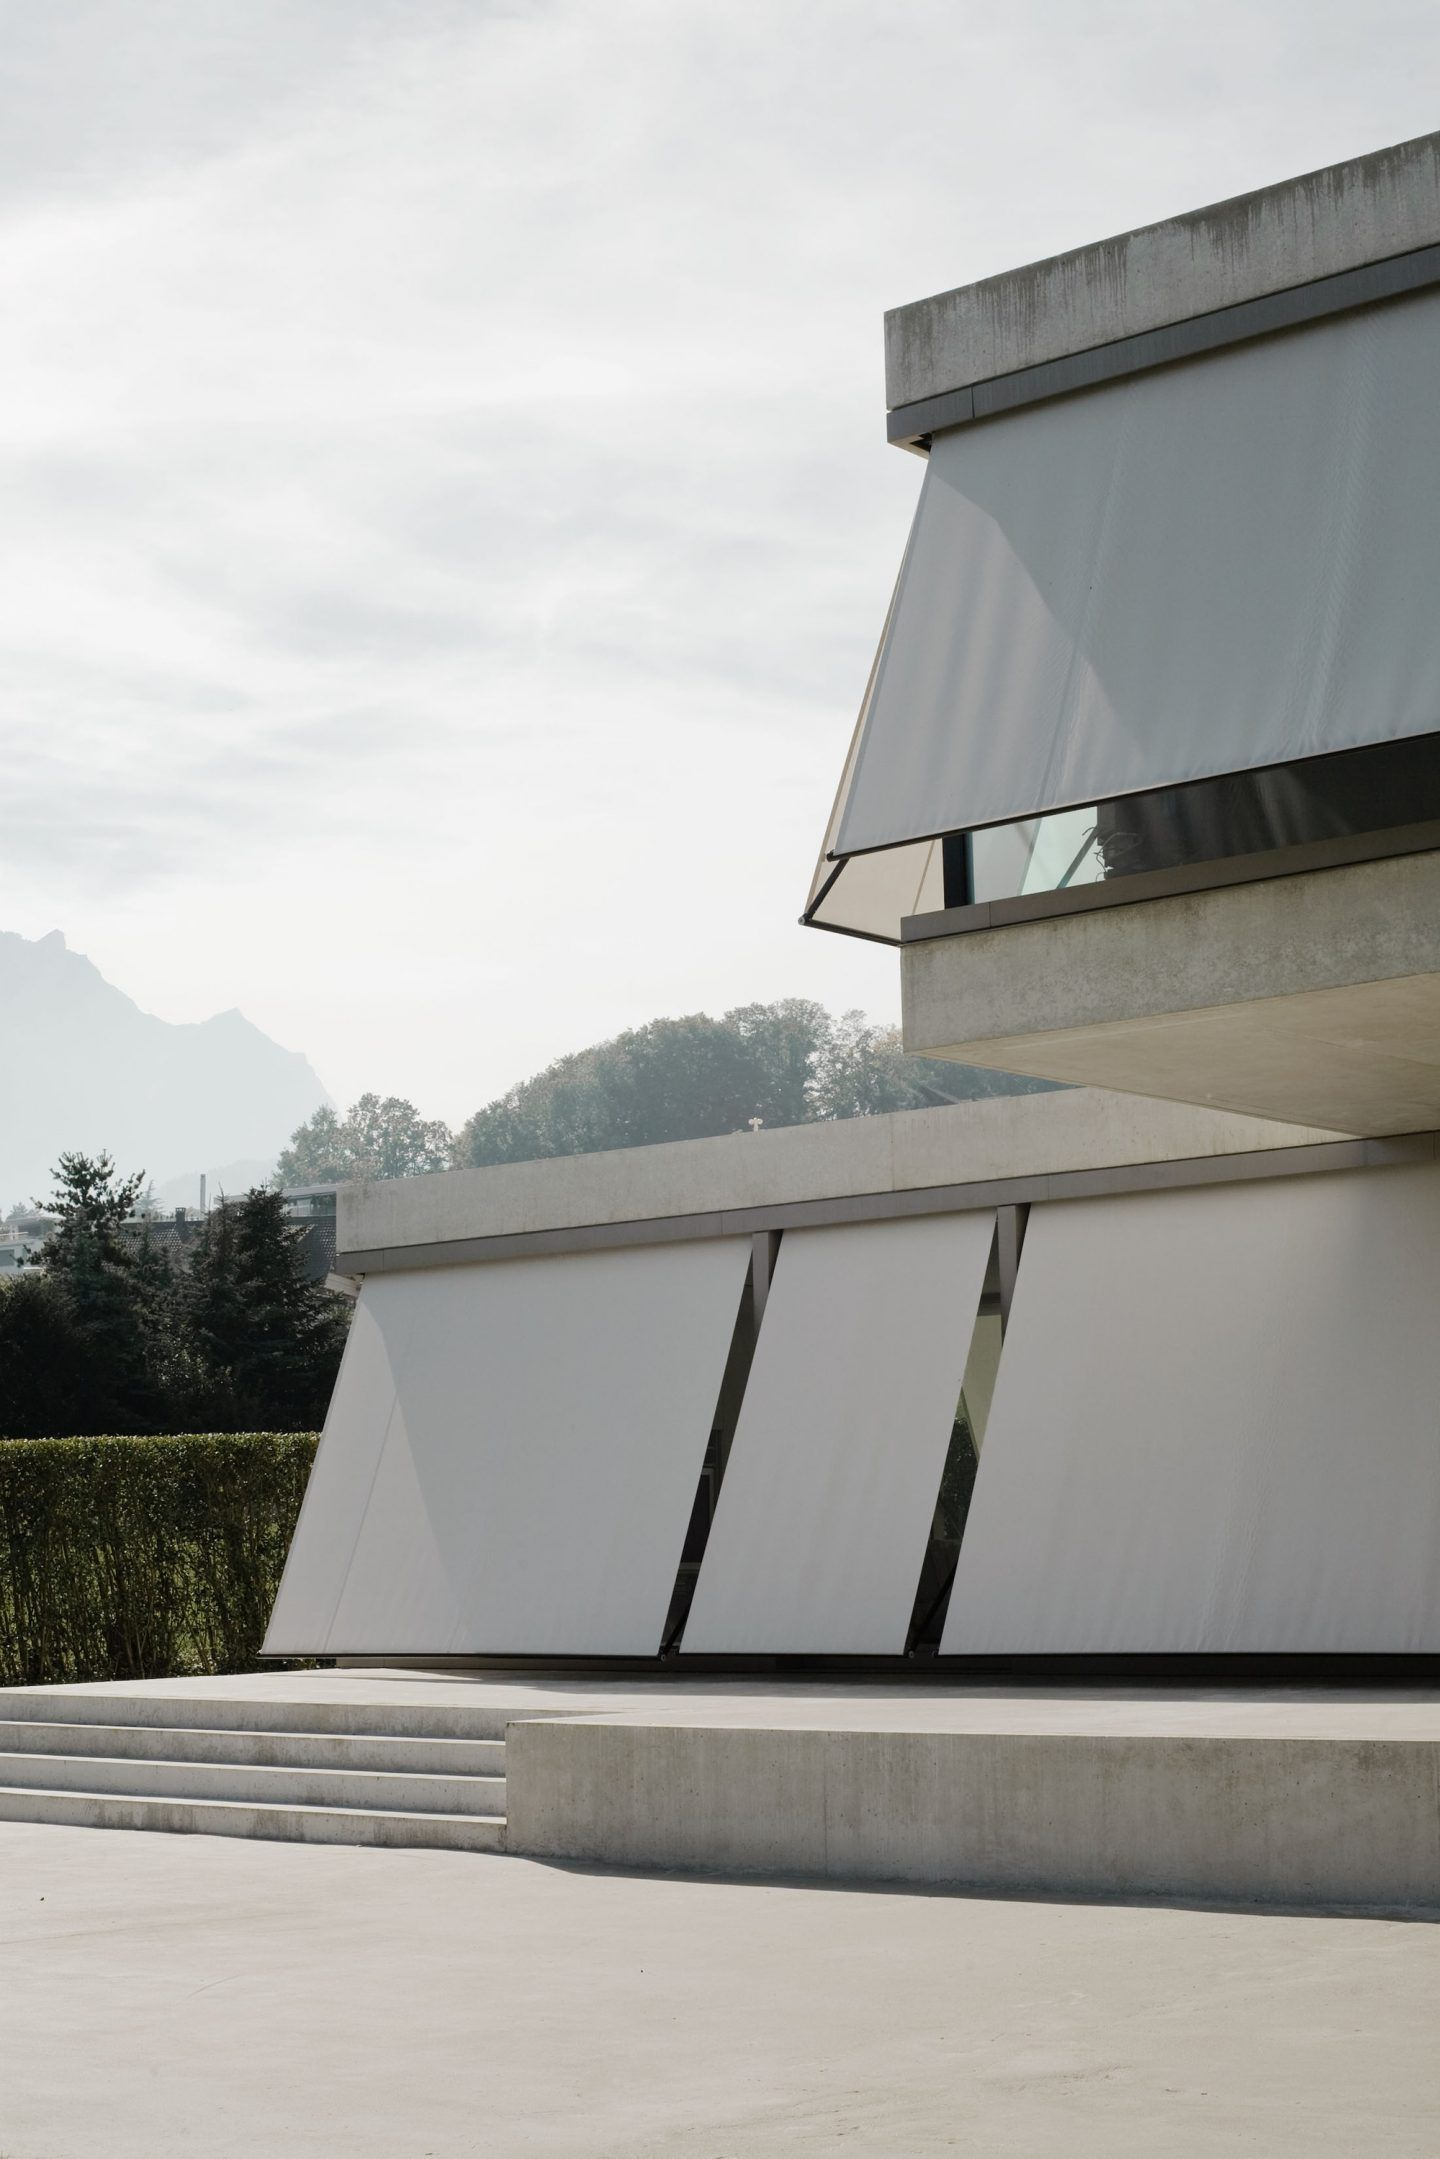 IGNANT-Architecture-Niklaus-Graber-Christoph-Steiger-Architects-Villa-M-007